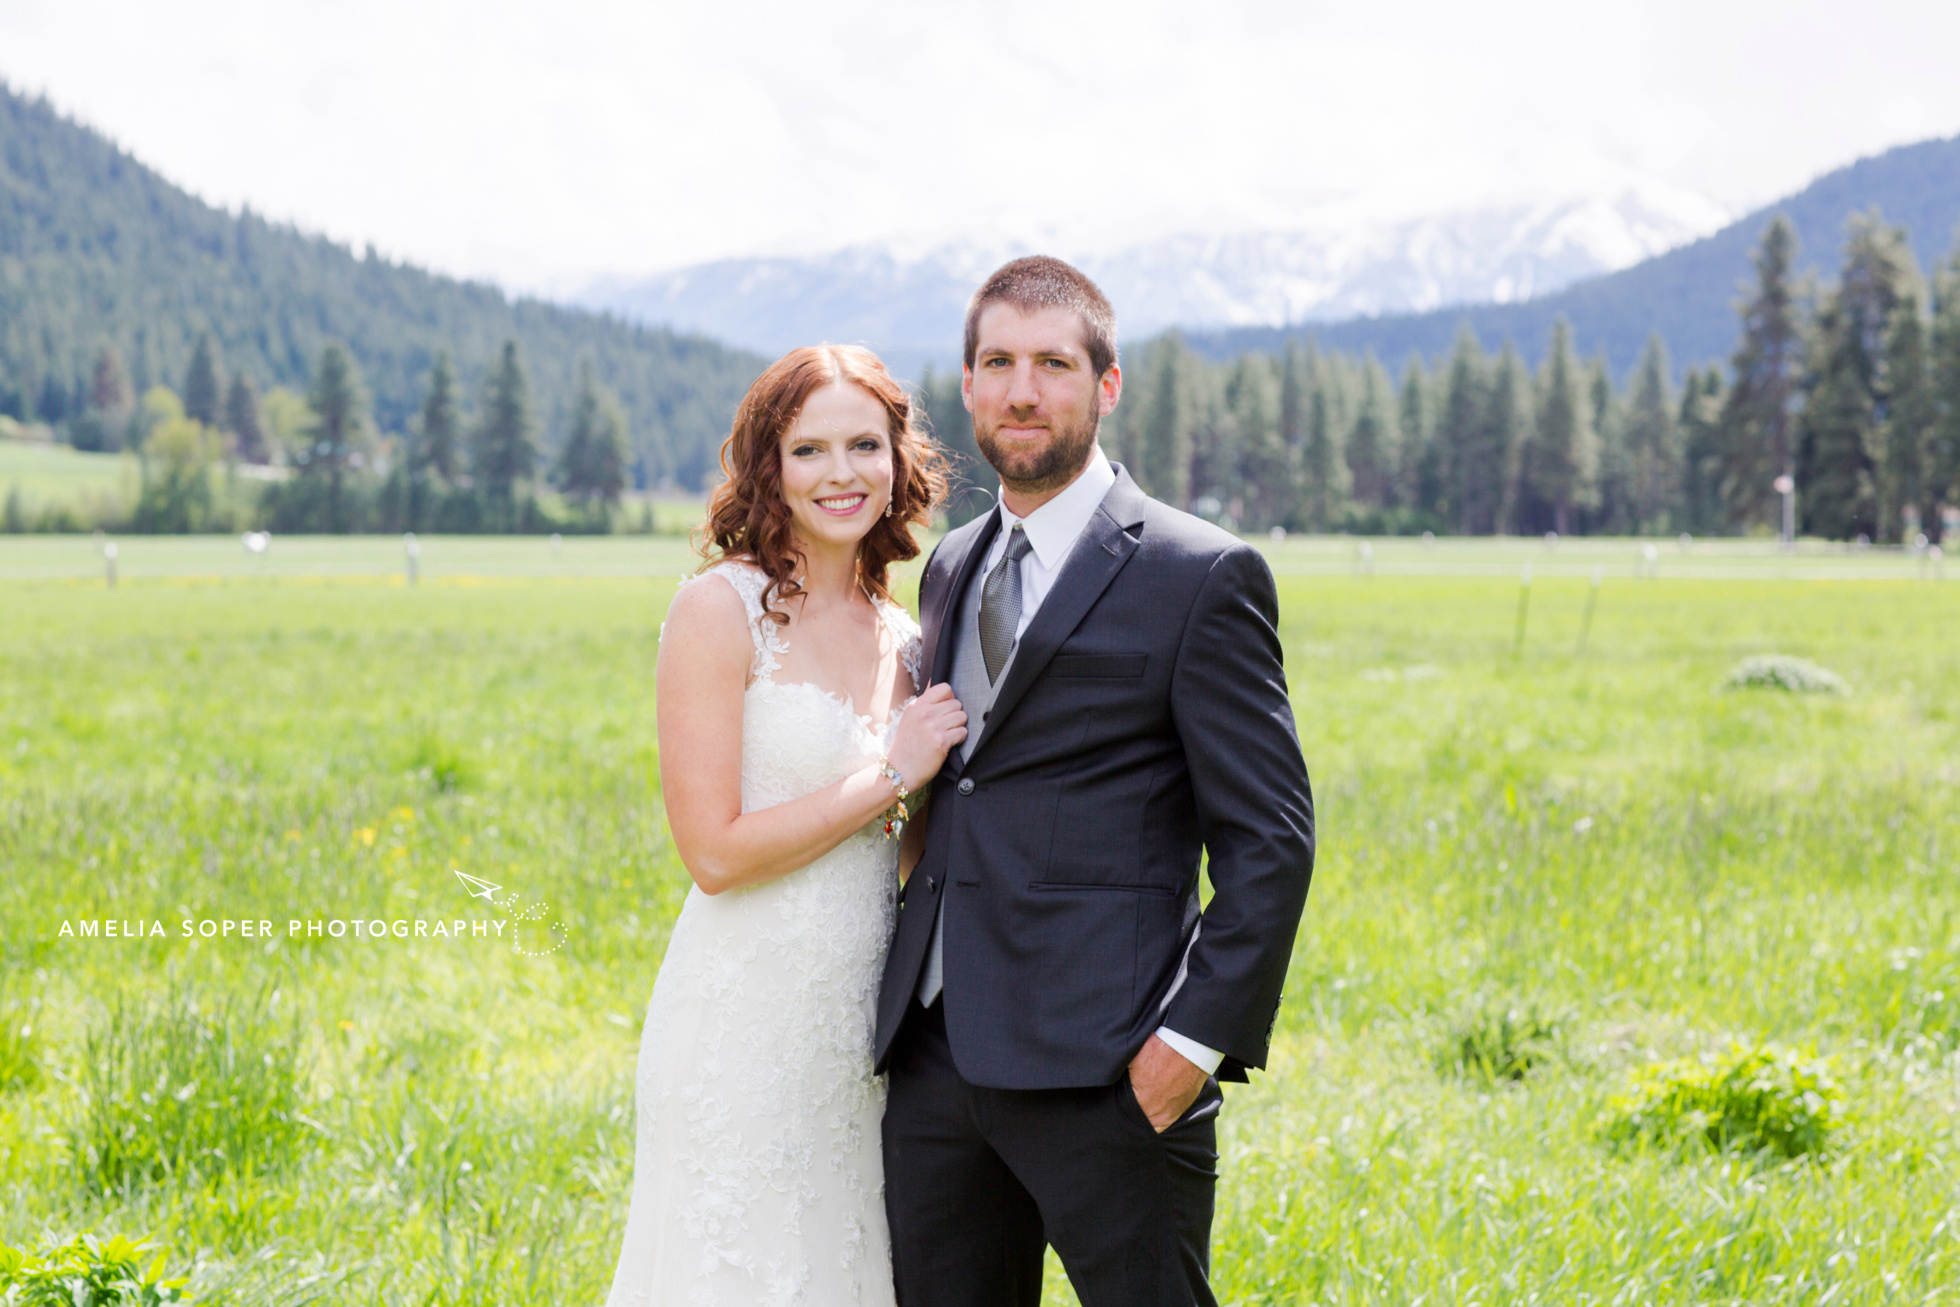 Wedding at Mountain Spring Lodge